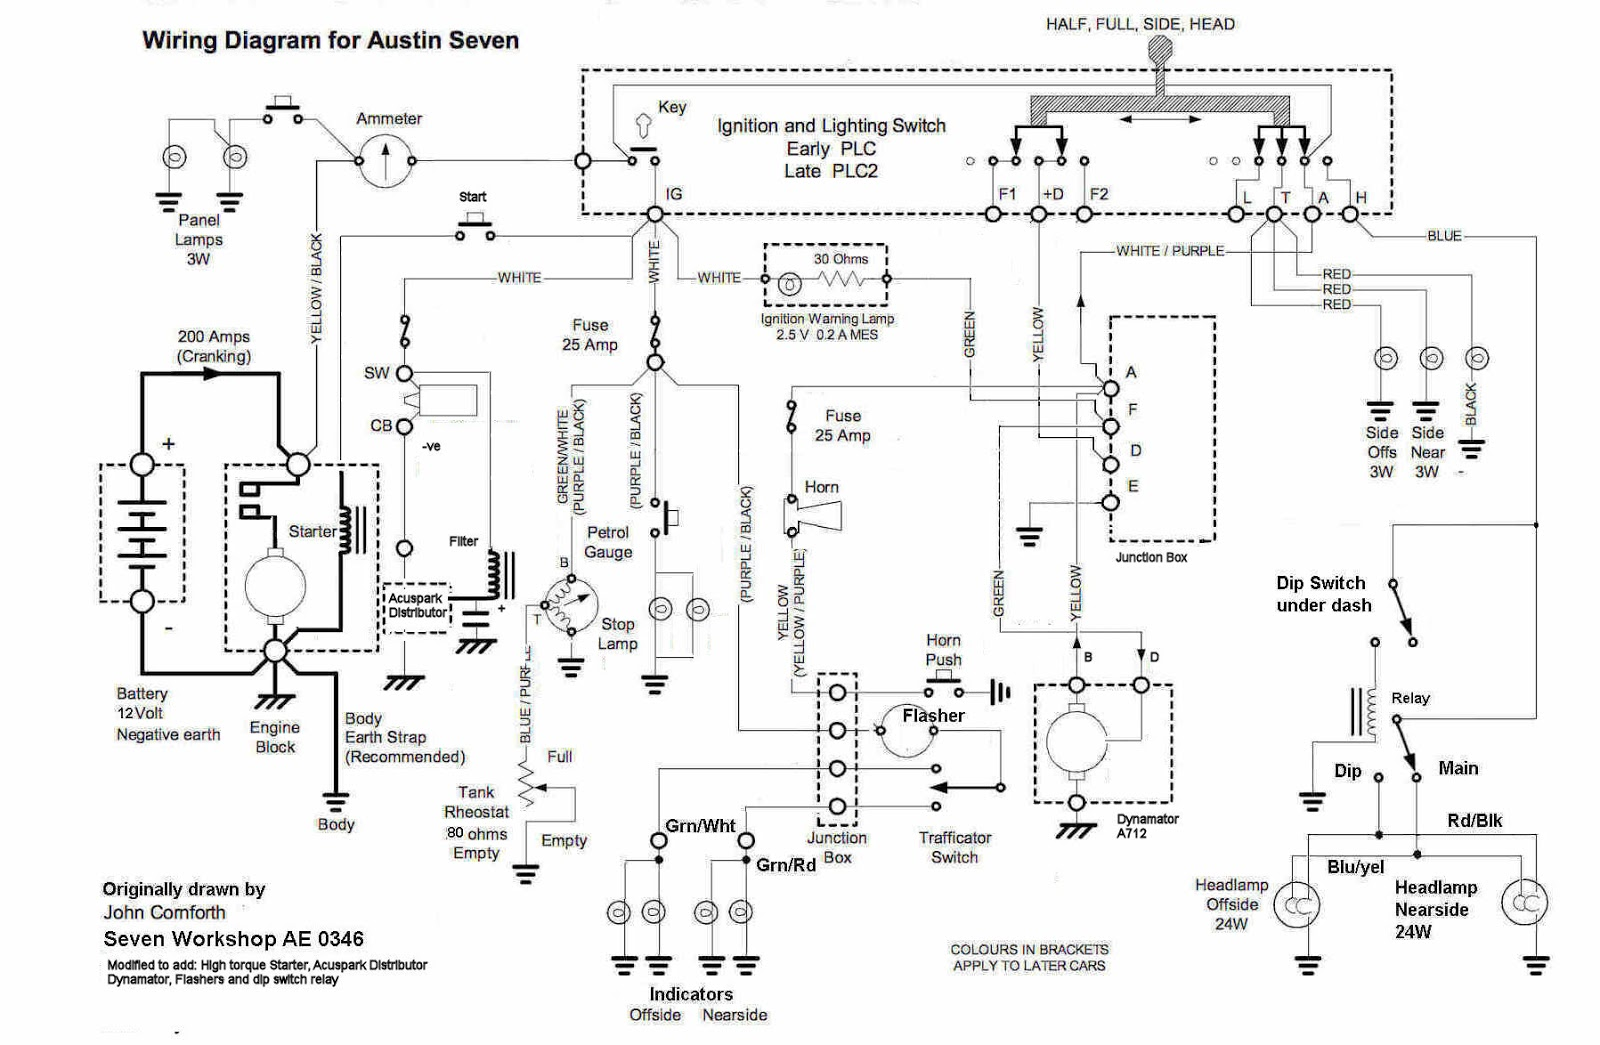 hight resolution of austin seven wiring diagram detailed wiring diagramaustin seven wiring diagram wiring diagram data austin seven special